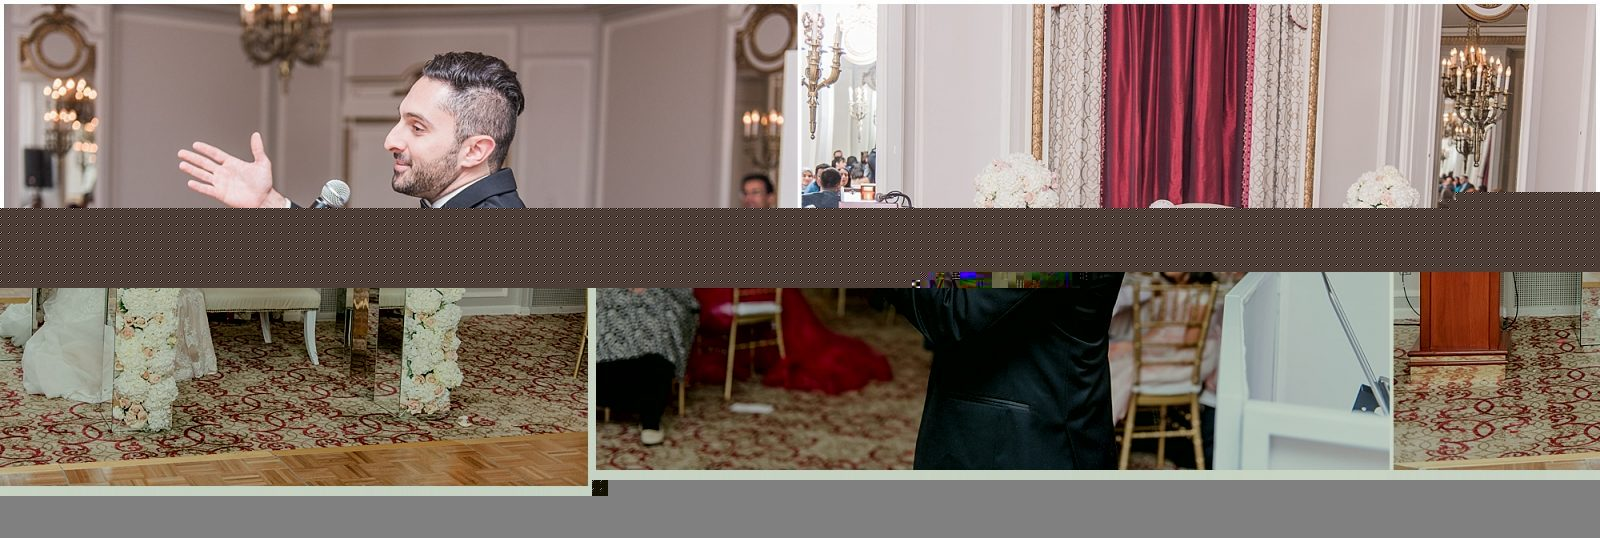 0093 Chateau Laurier Wedding - Hijabi Bride - Sireen & Anas- Ottawa_PhotosbyEmmaH.jpg